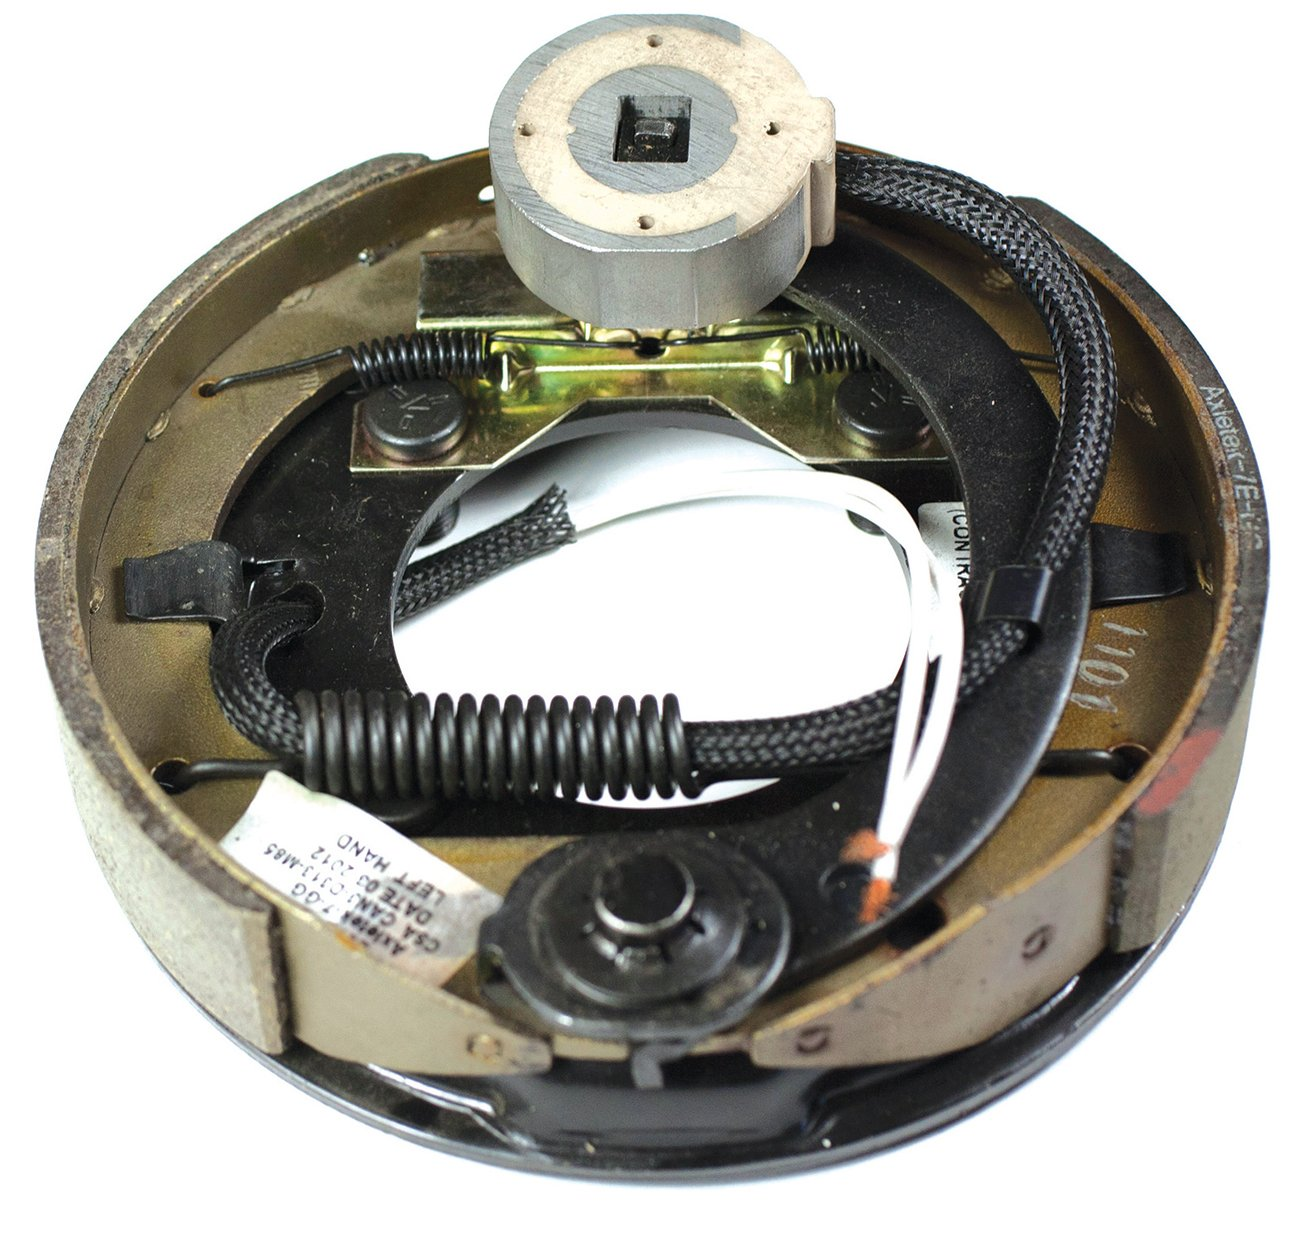 Husky 30789 Black Painted 7'' x 1.25'' Left Hand Electric Brake Assembly - (600 lb. to 2200 lb. Axle Capacity)